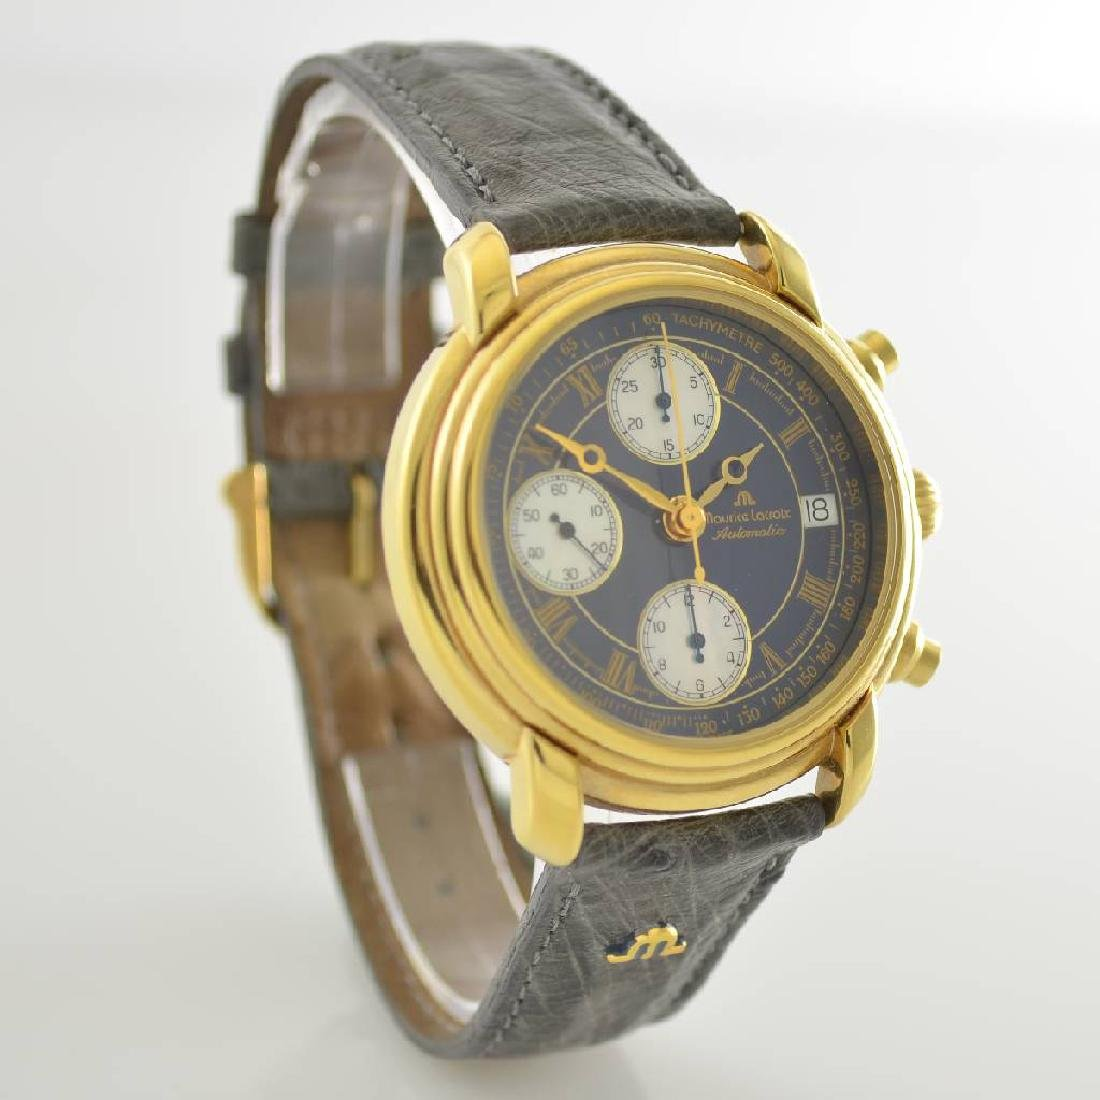 MAURICE LACROIX gents wristwatch with chronograph - 5